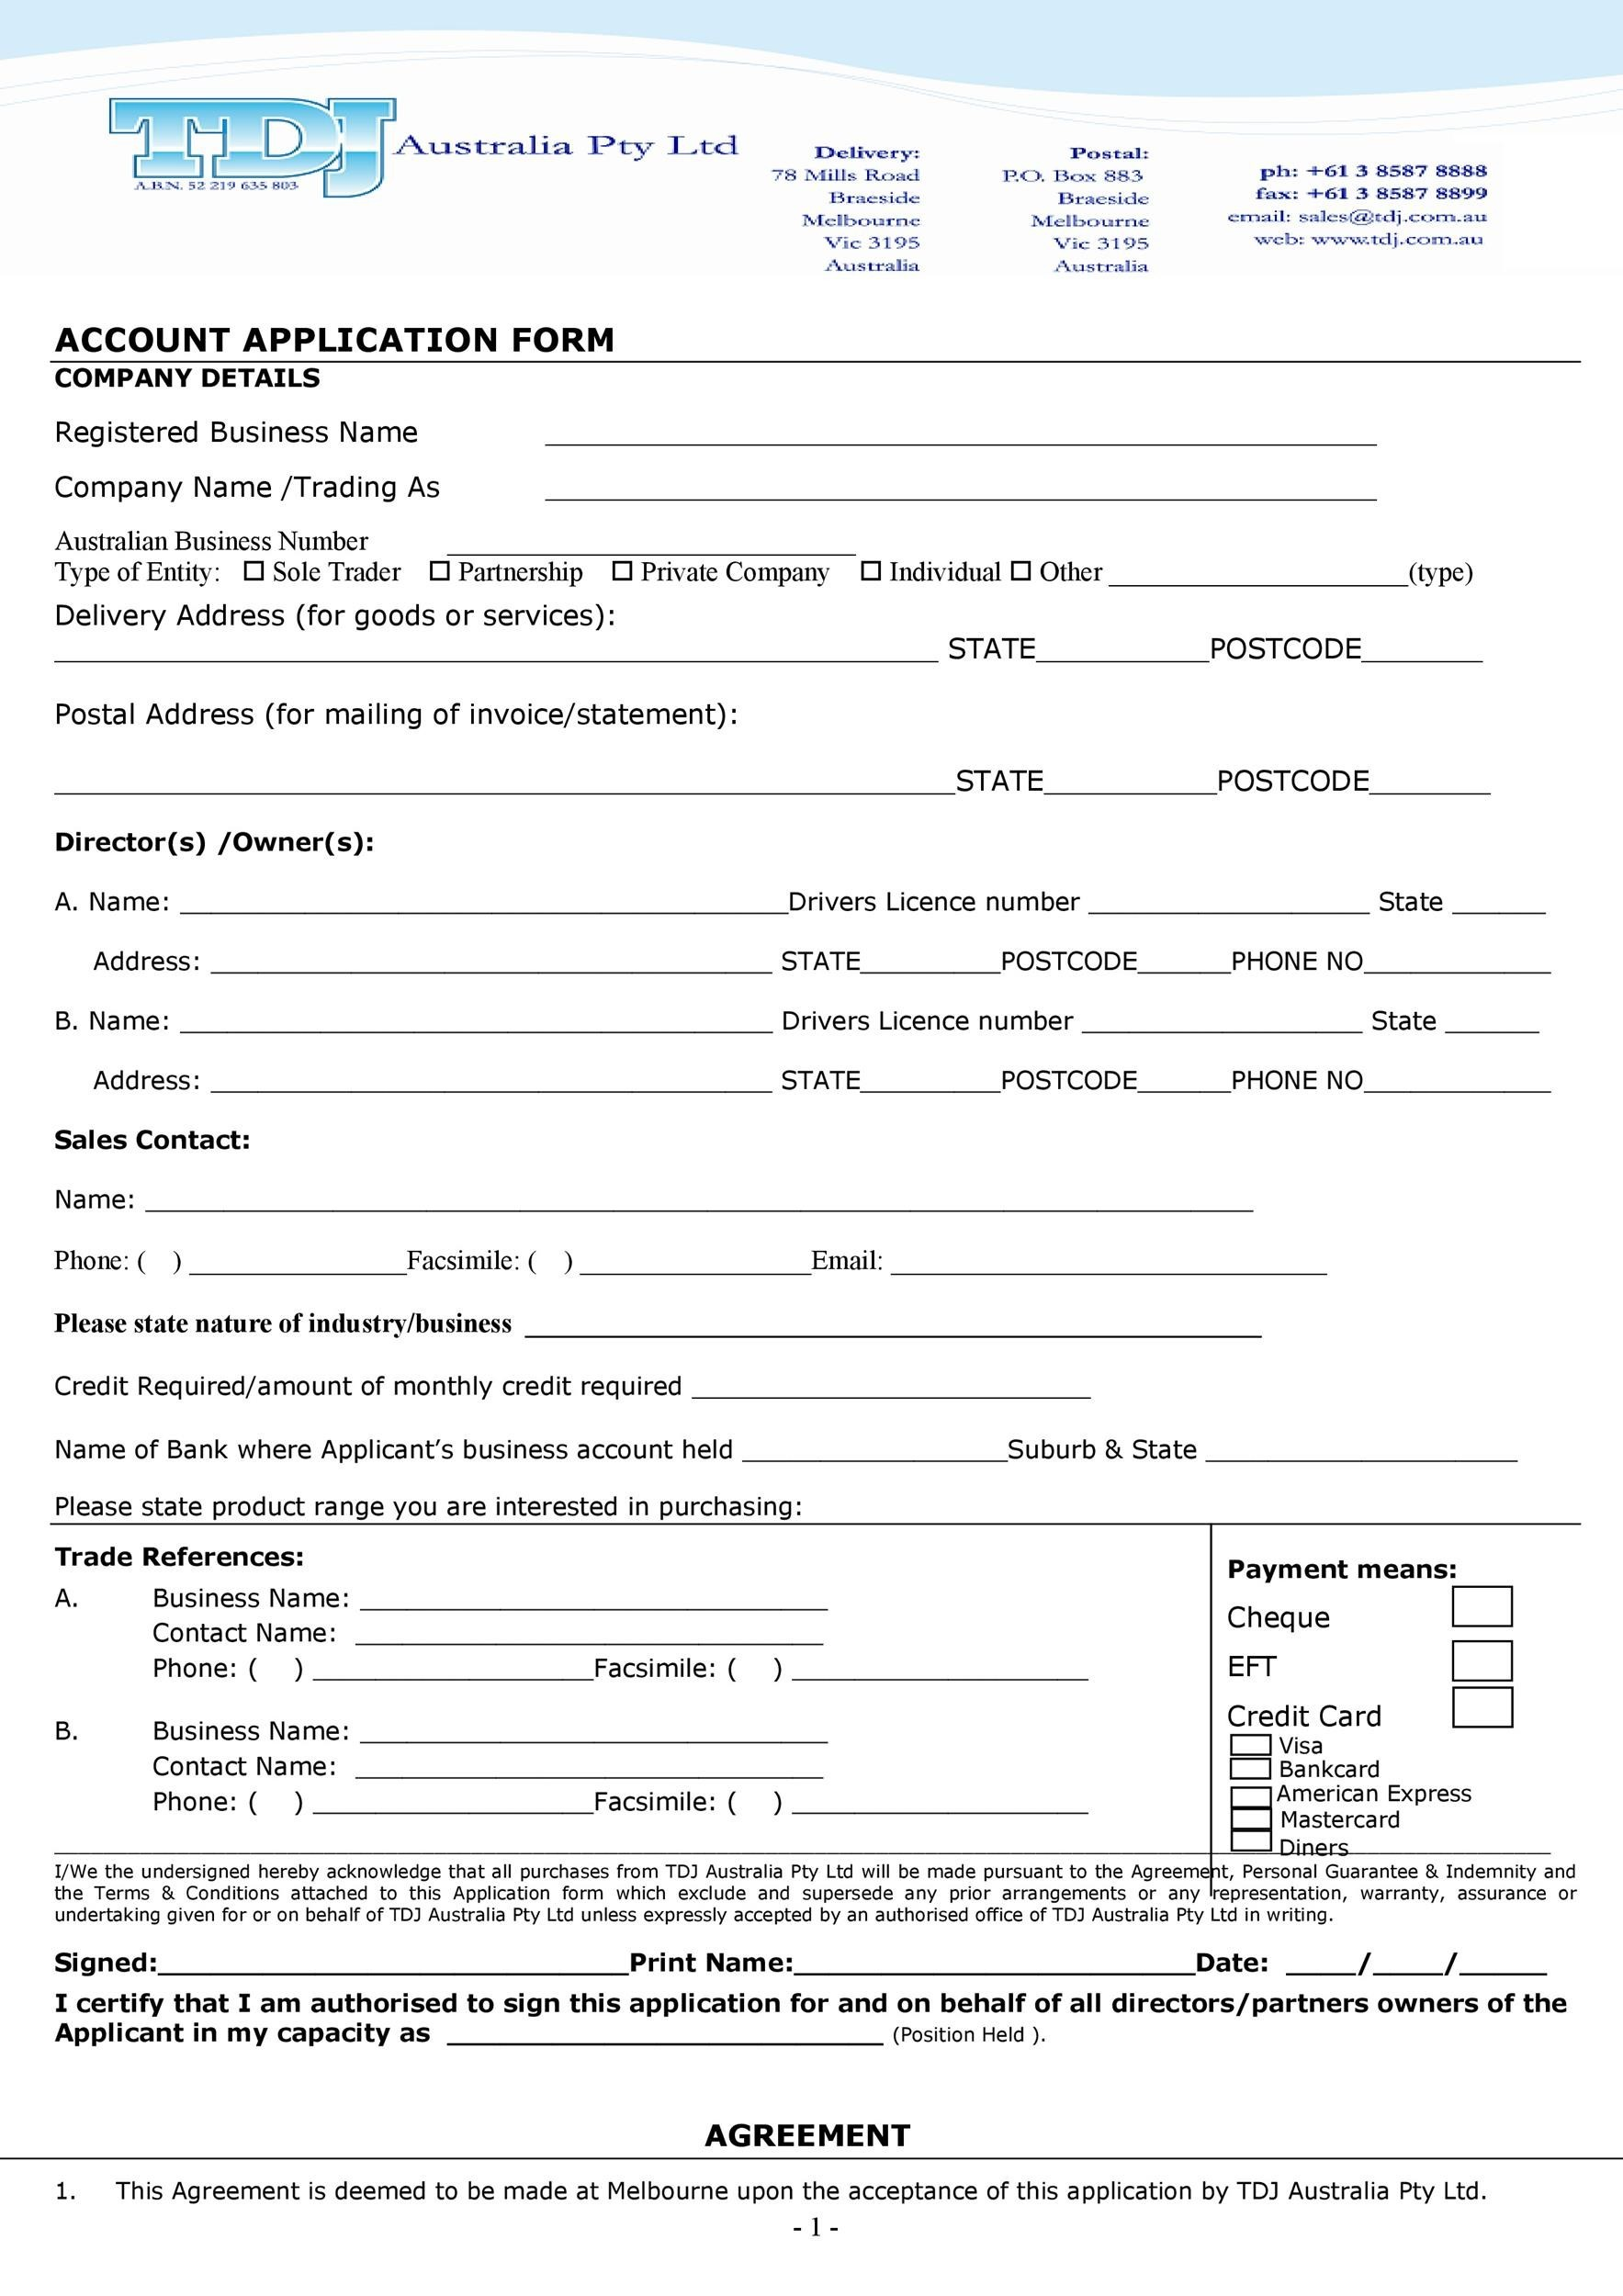 Free Credit Application Form 23